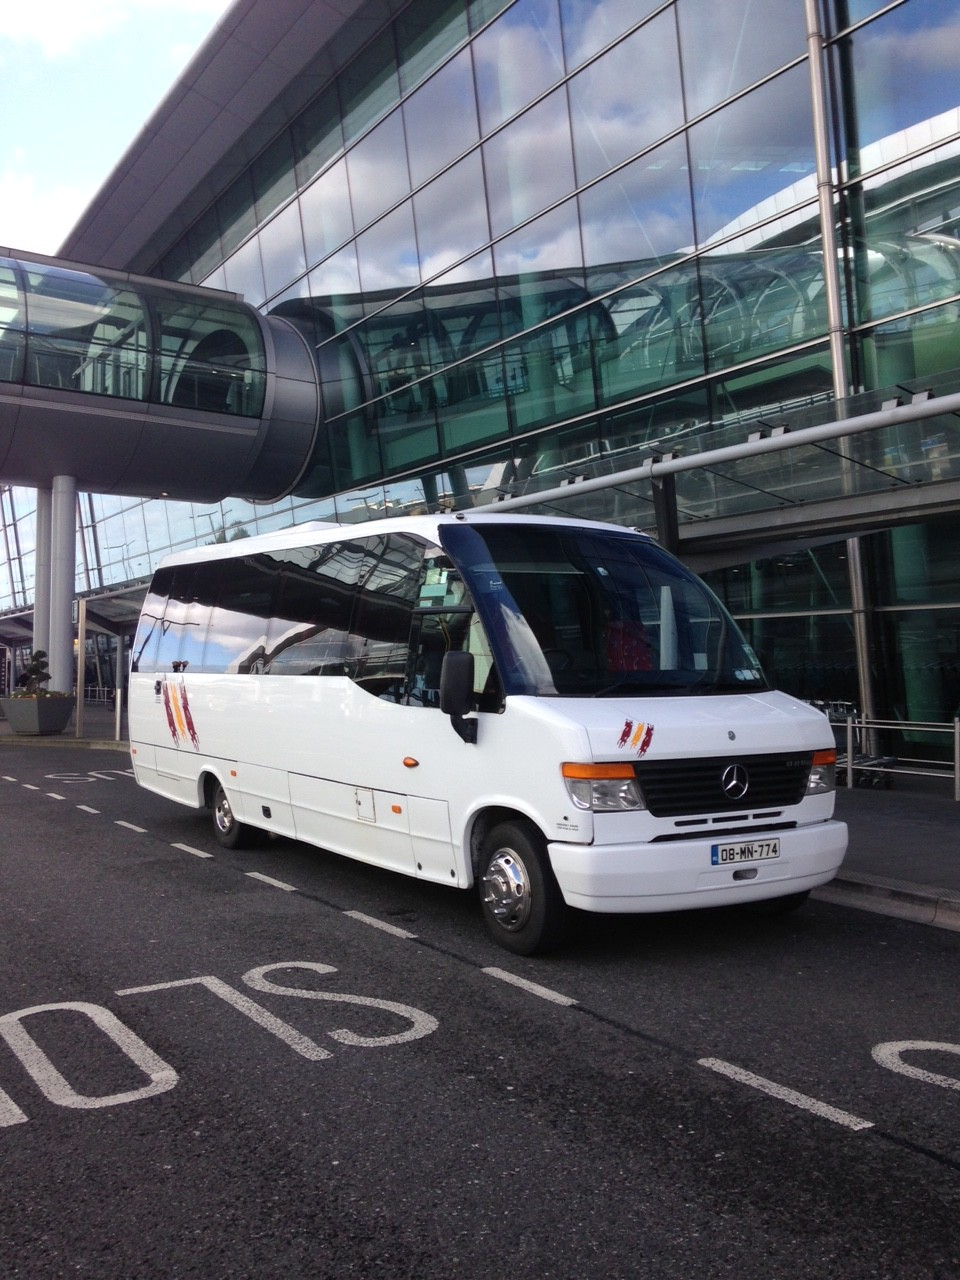 Laverty Coaches professional airport transport services getting you to & from the airport in comfort & style.